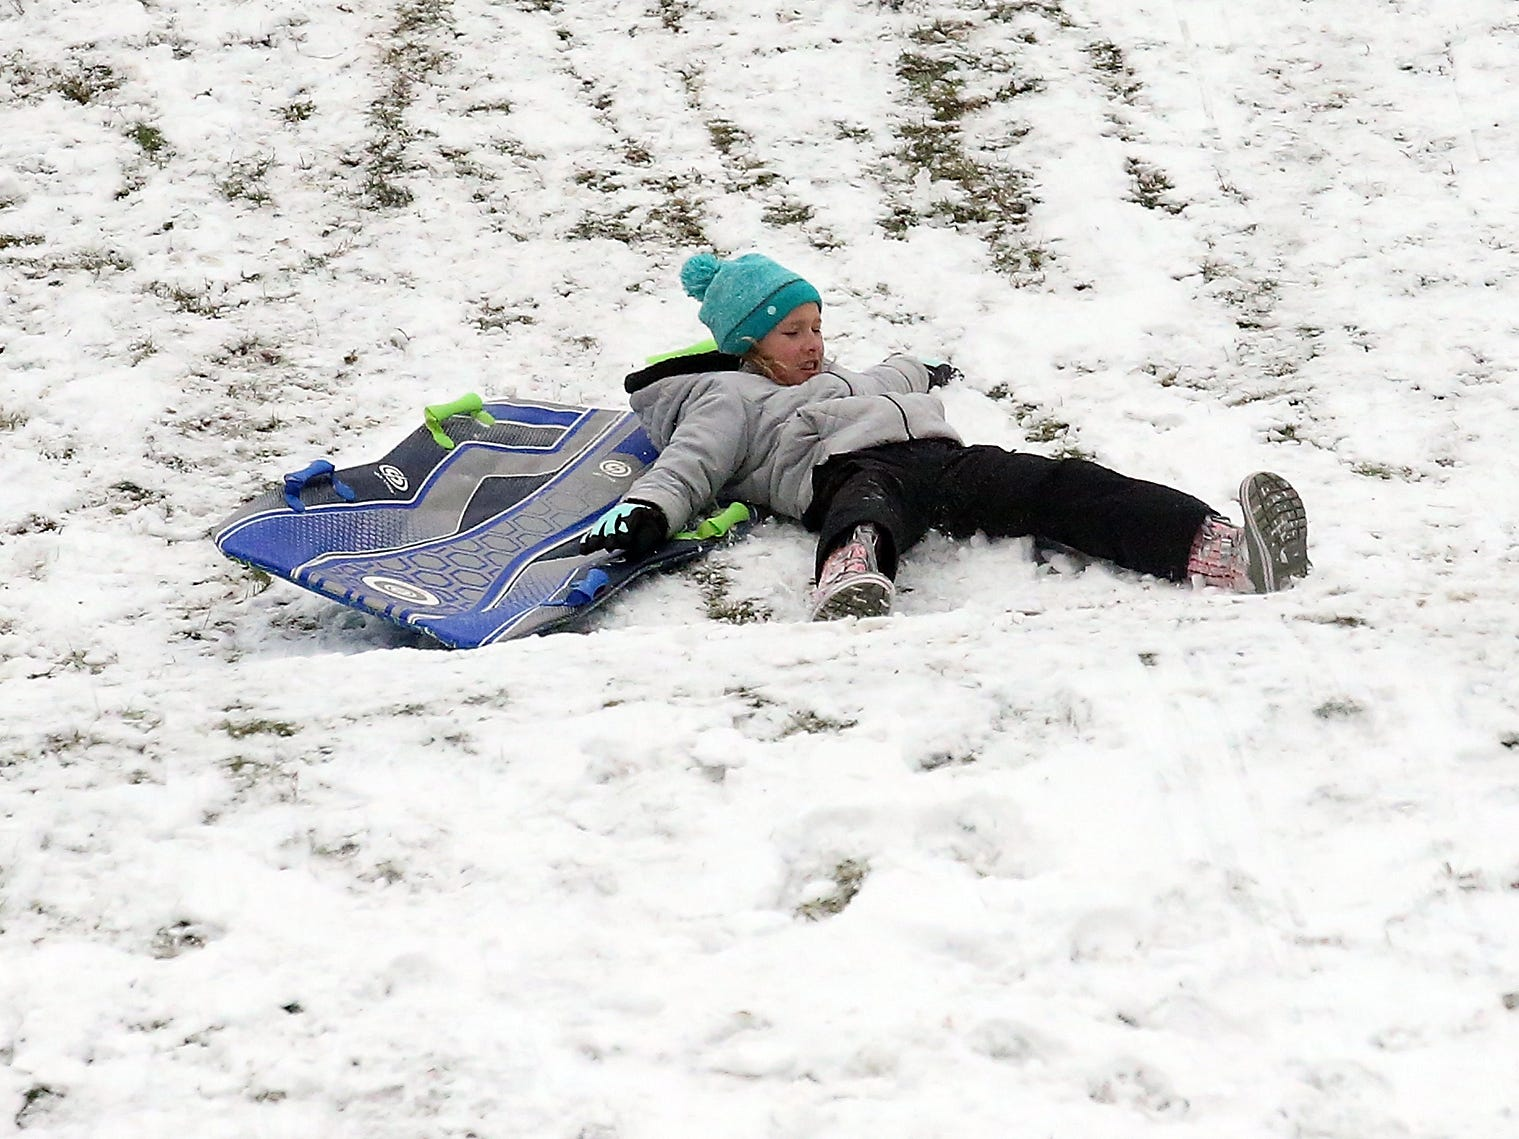 Madison Fairchild, 10, tumbles off of her sled while sledding at Silver Ridge Elementary School in Silverdale on Monday, February 4, 2019.